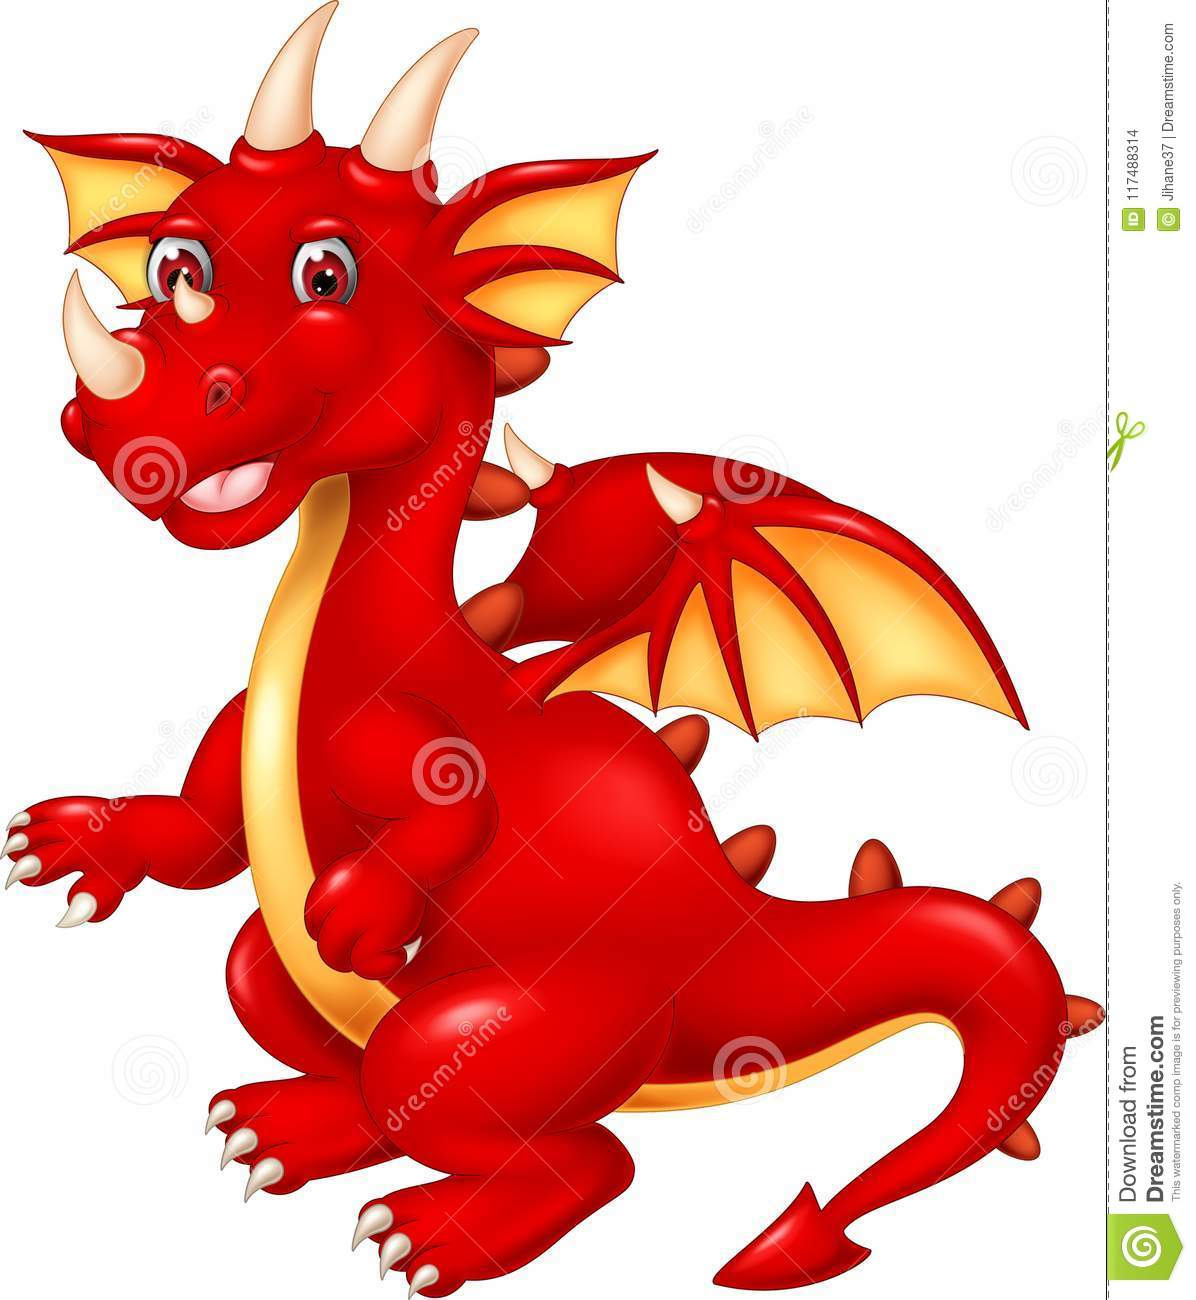 Cute dragon cartoon posing with smiling and waving